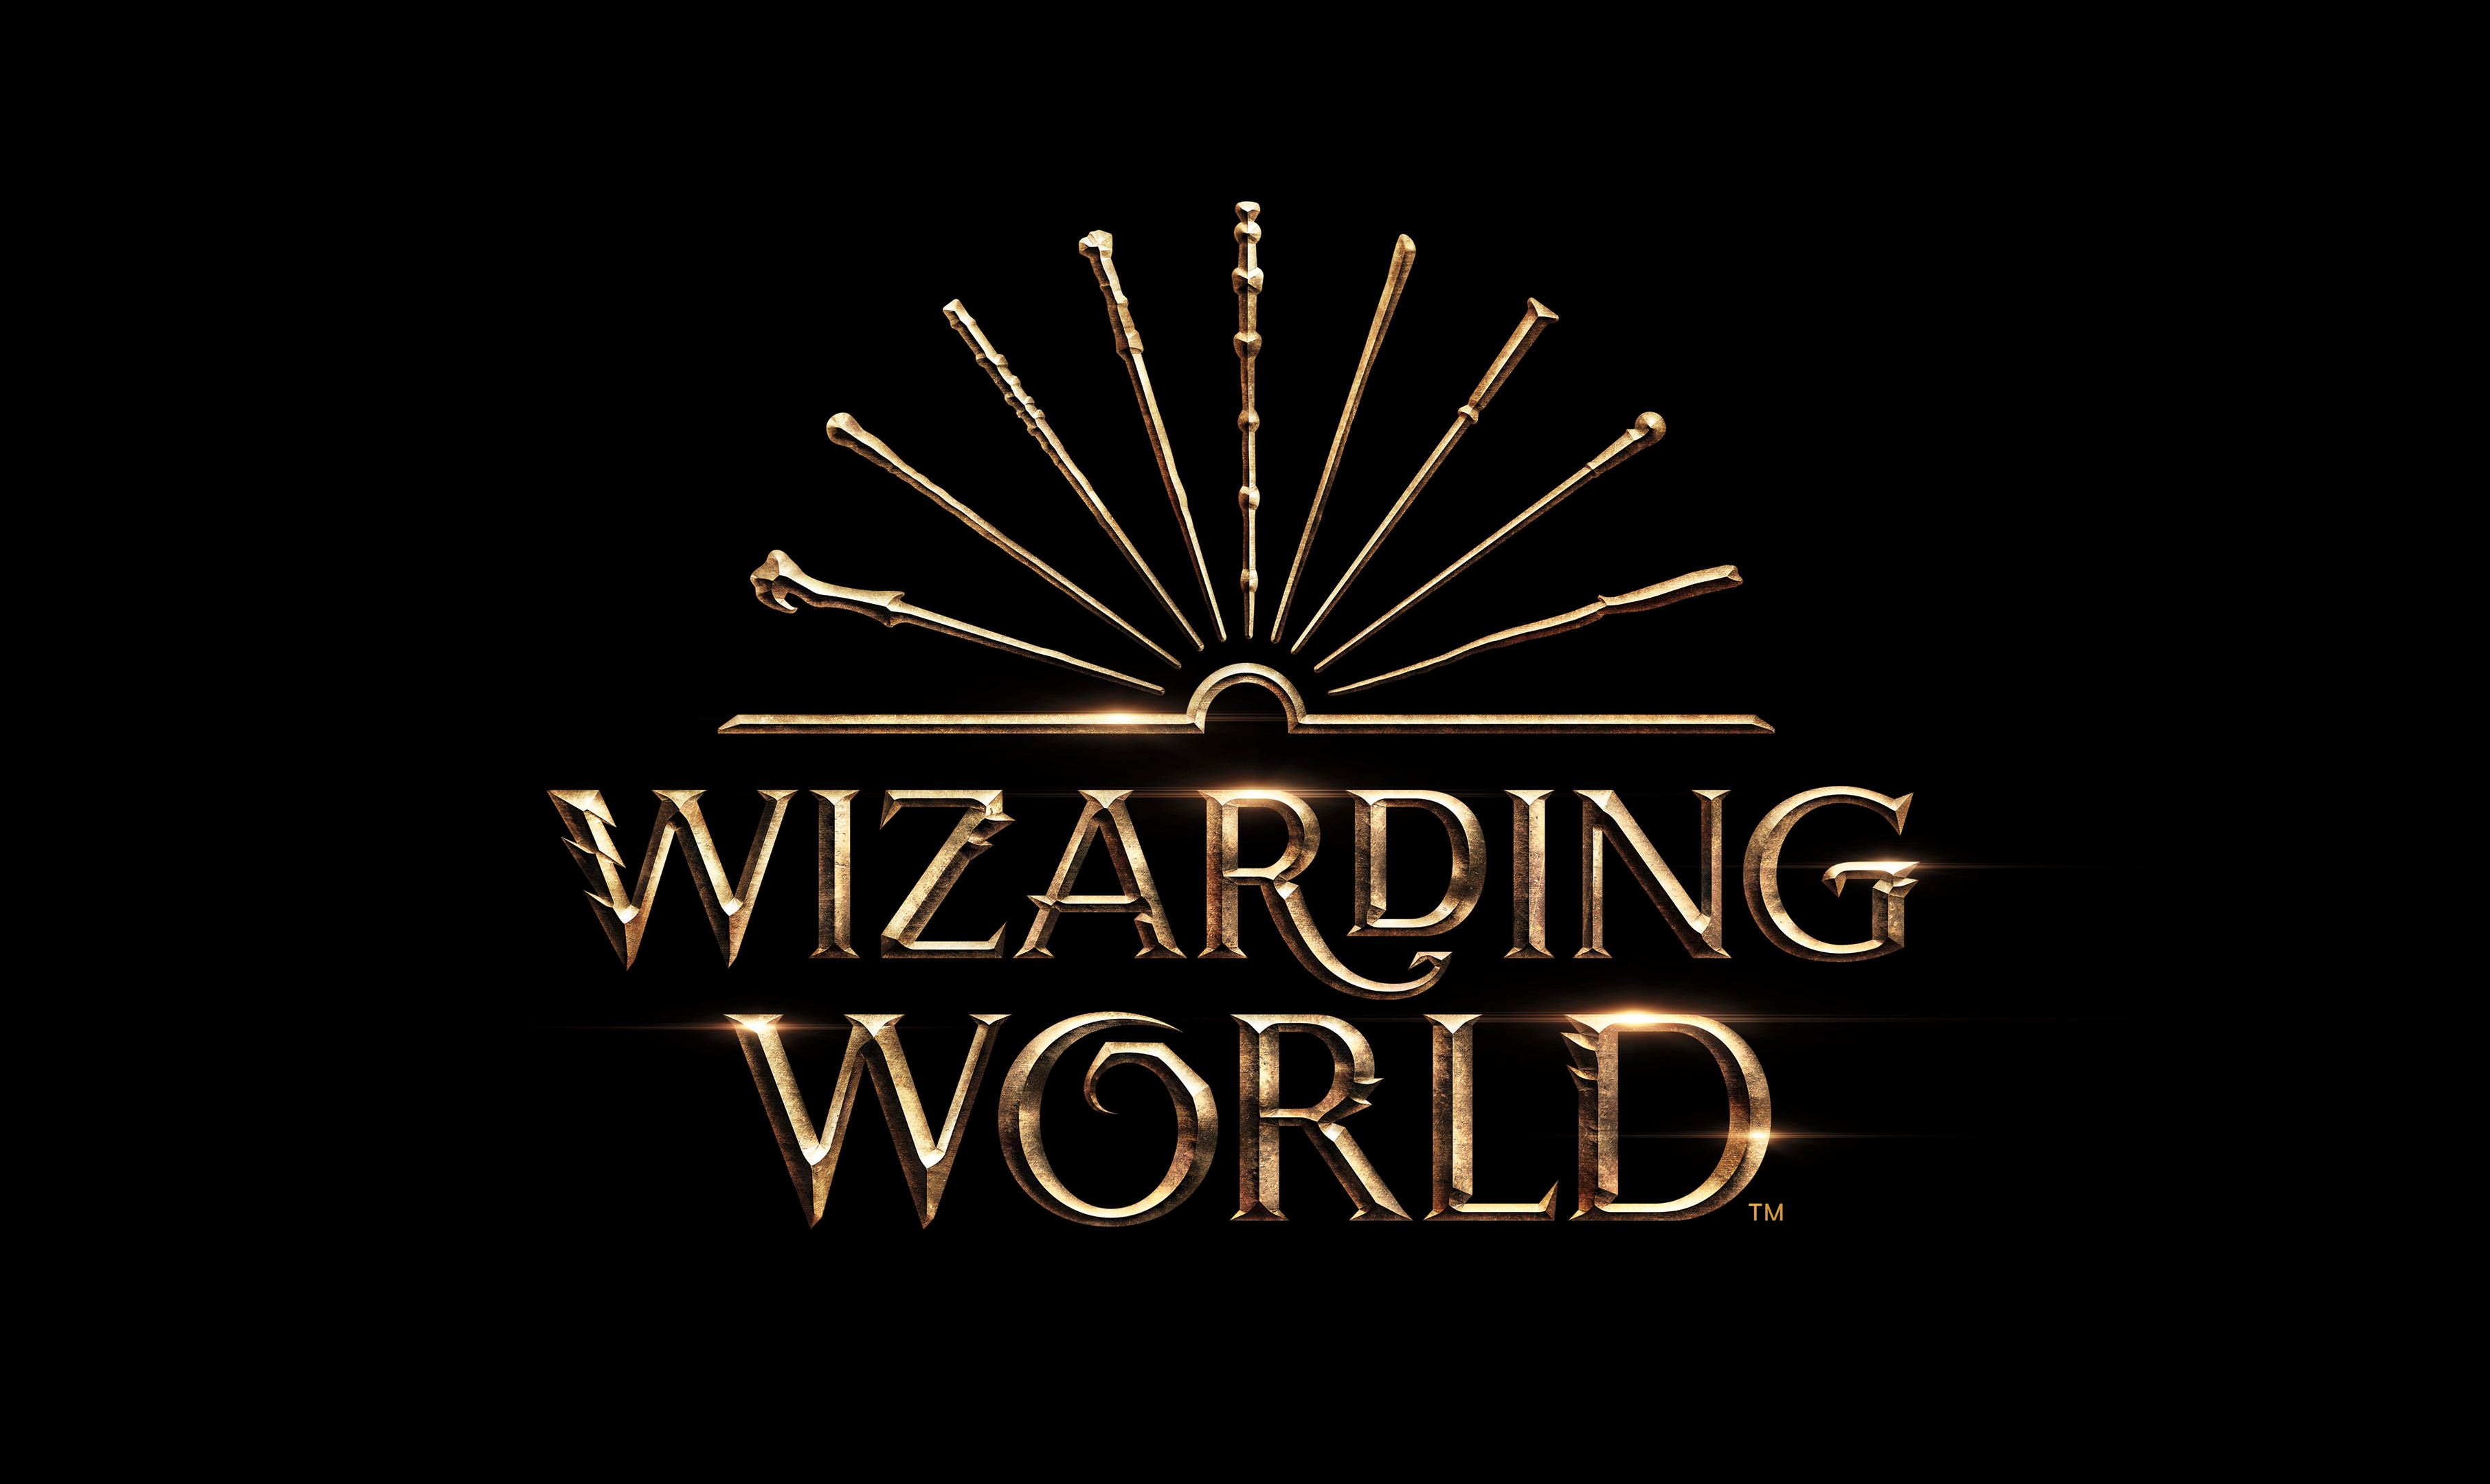 New logo marks an exciting year ahead for the Wizarding World ...